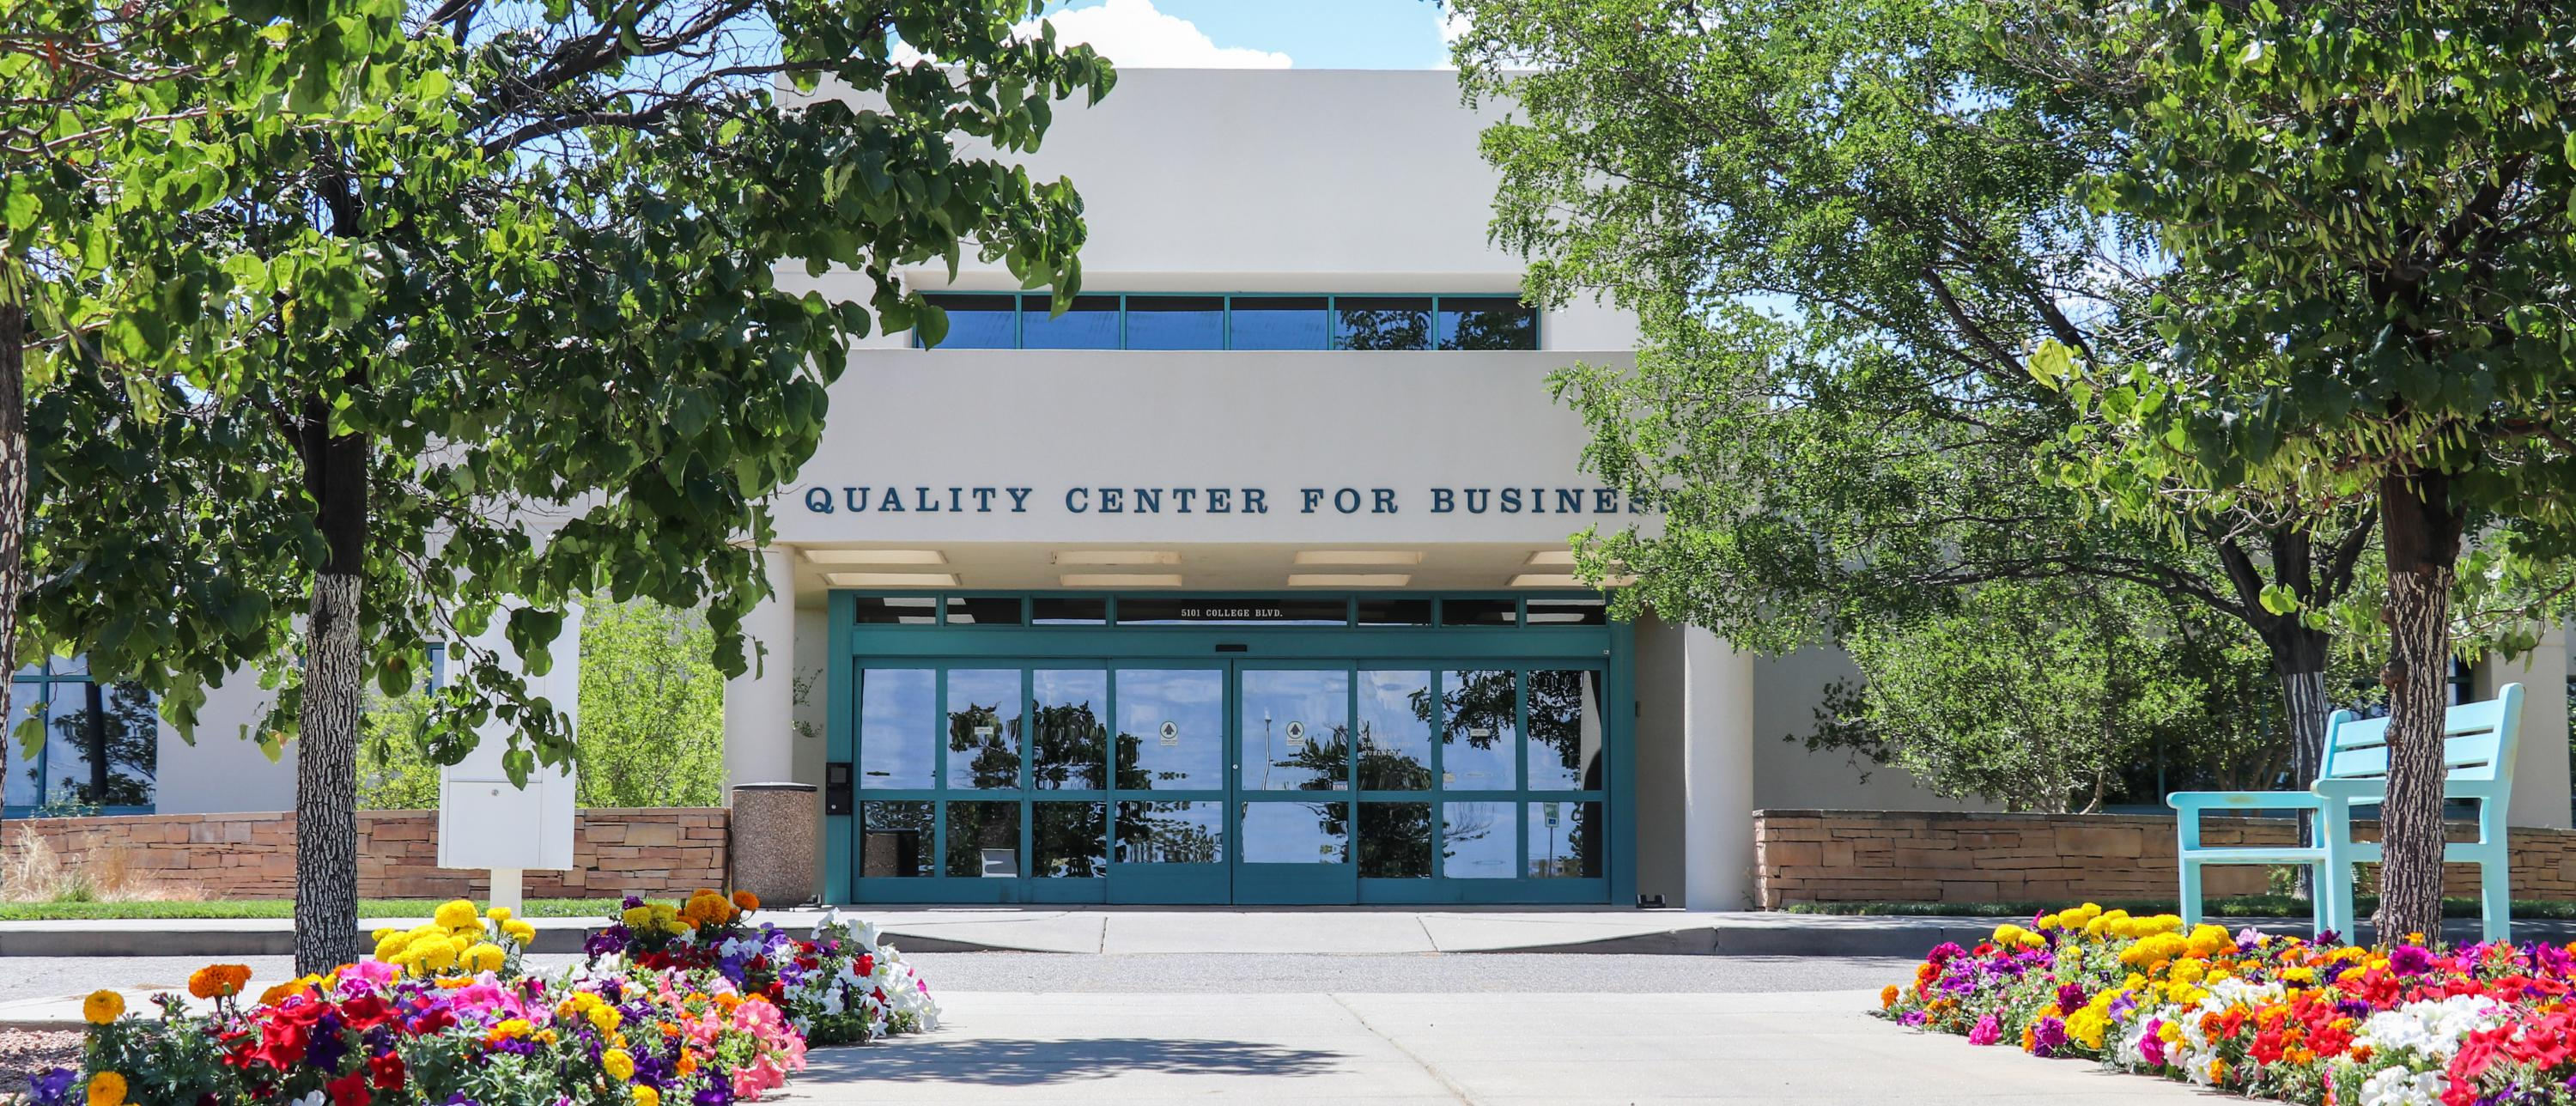 Business Resources for San Juan County, NM